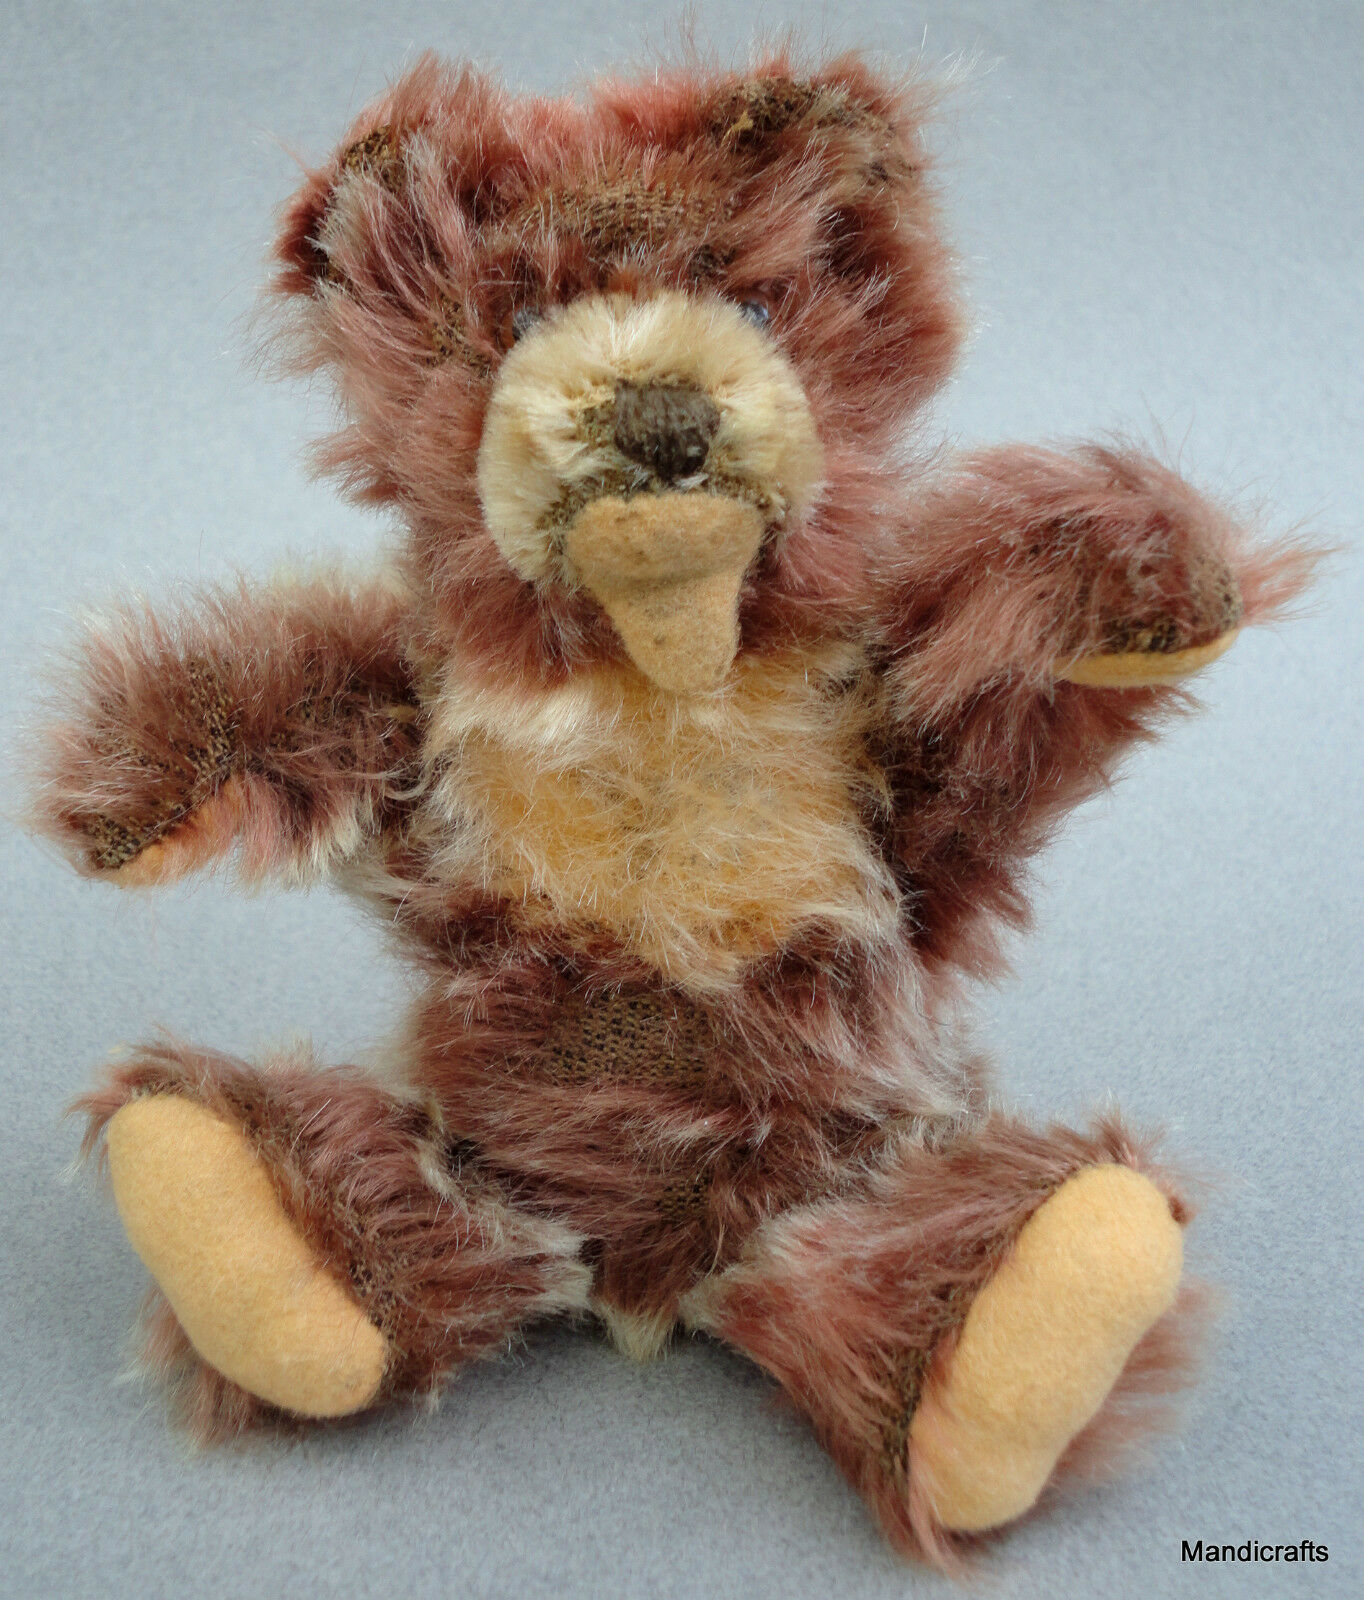 Steiff Zotty Teddy Bear Cinnamon Mohair Plush 17cm 7in 1950s Jointed no ID AS IS